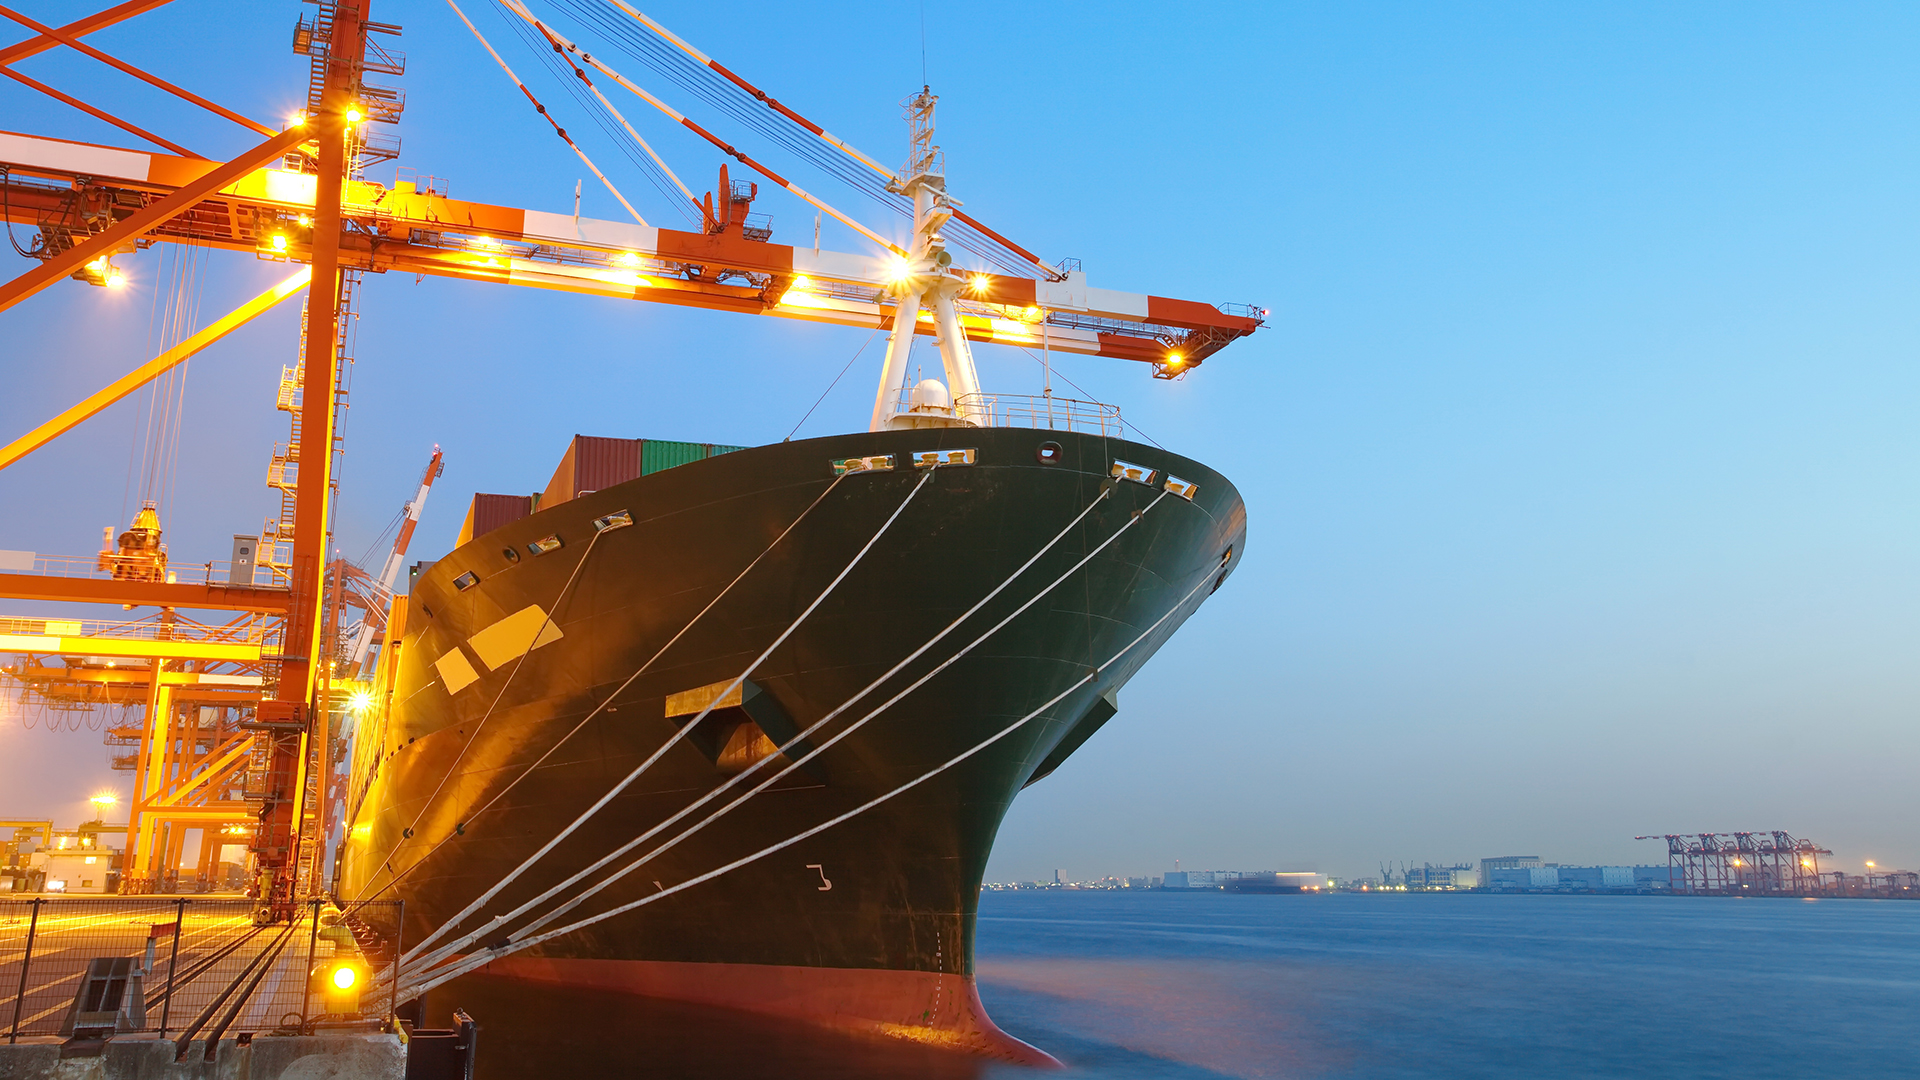 Modern Slavery and Human Trafficking reporting: the risks of modern slavery in maritime supply chains